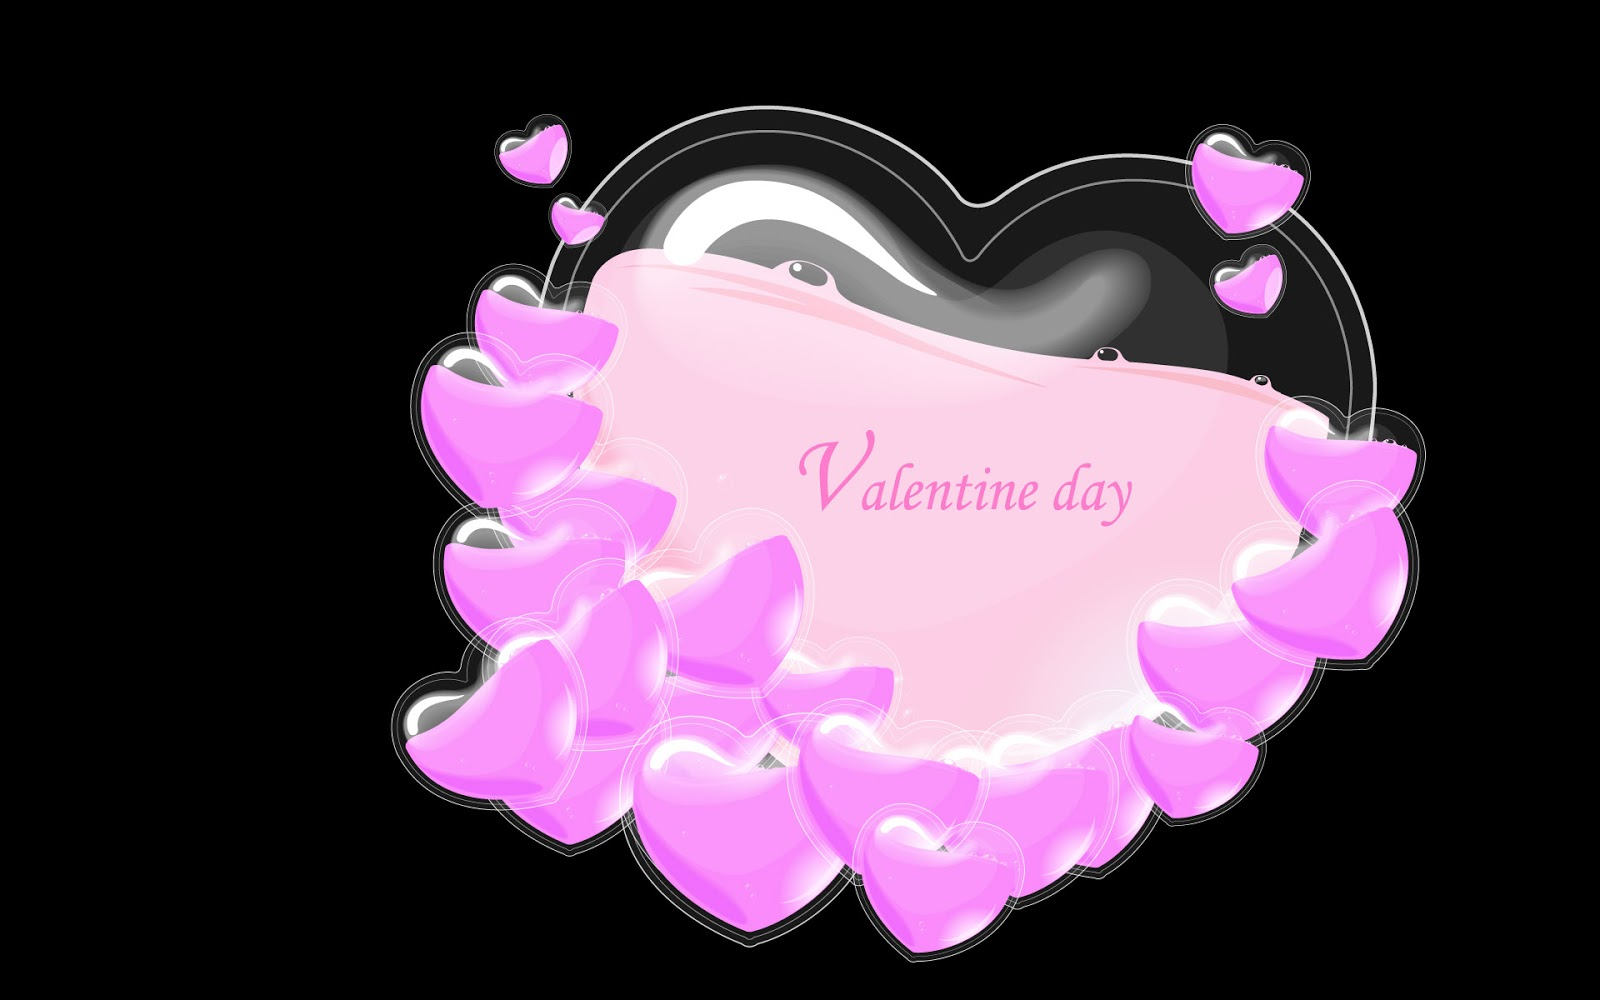 valentines day backgrounds wallpapers - photo #31